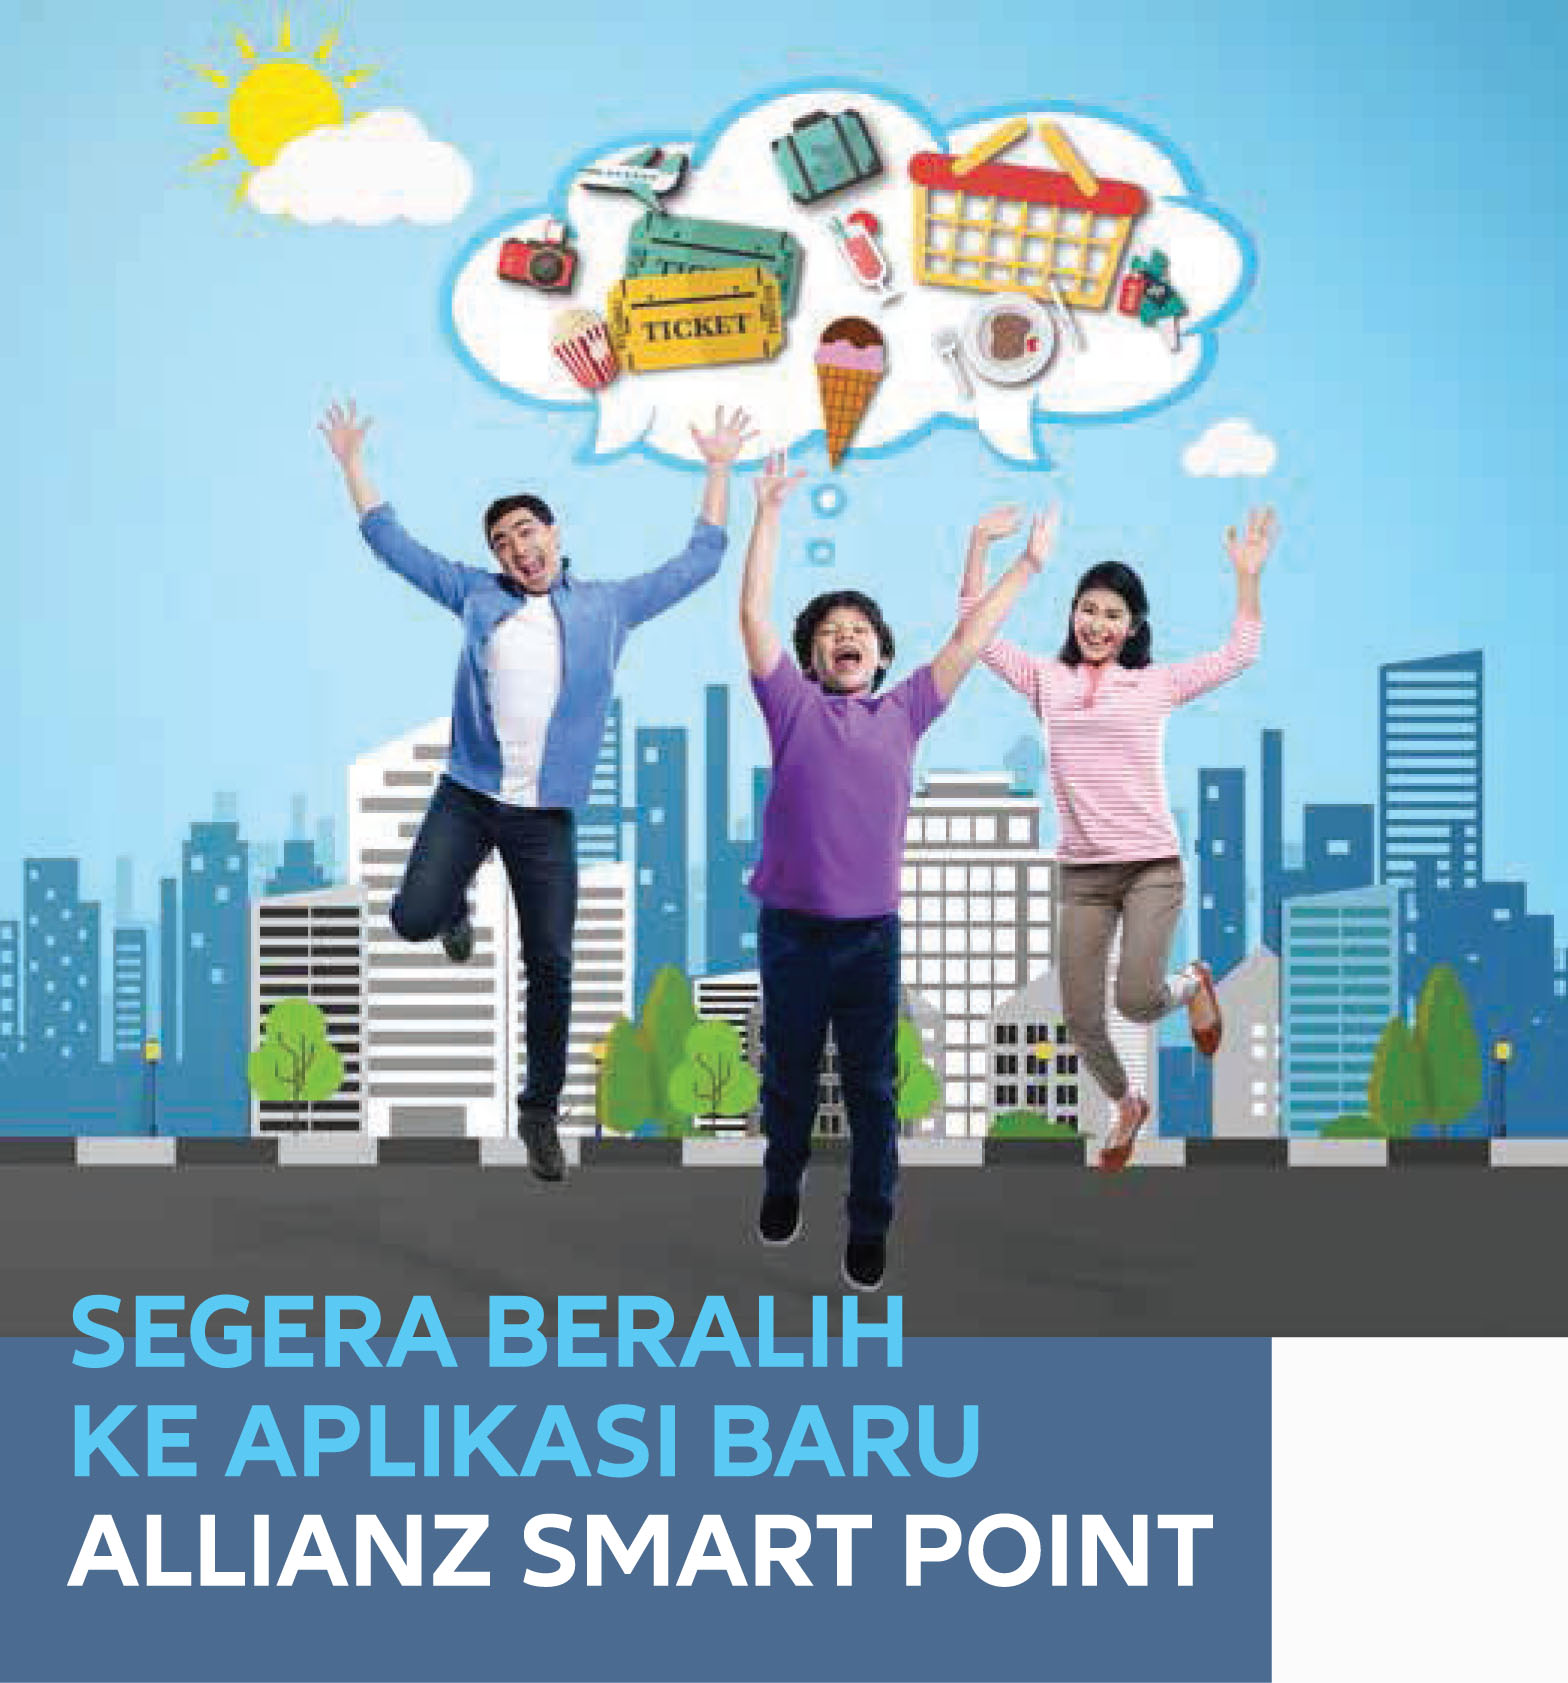 allianz smart point baru